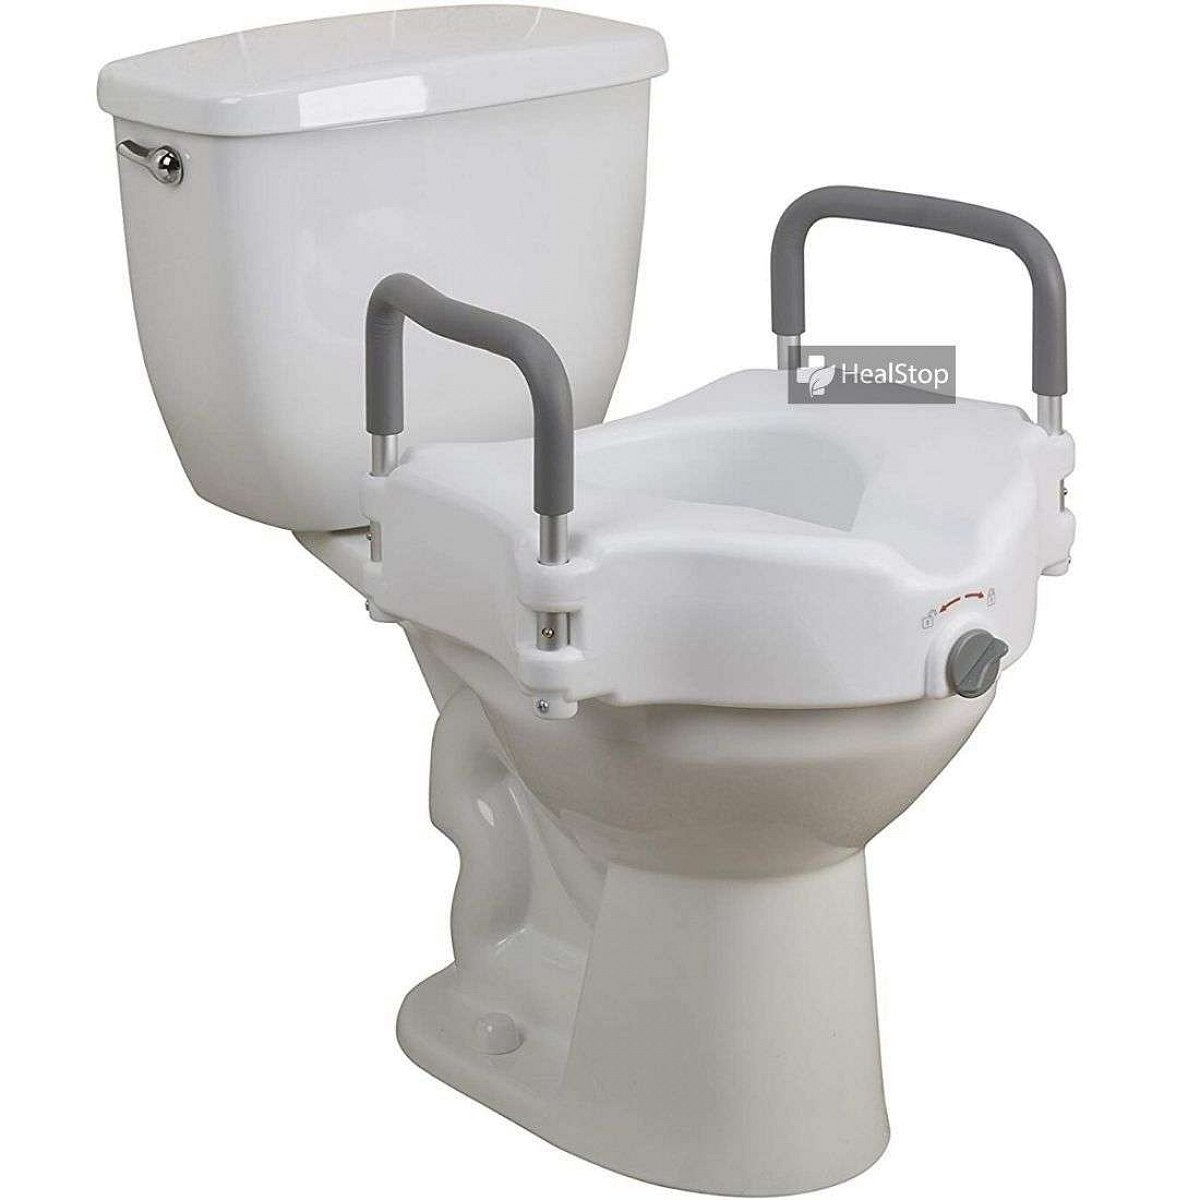 Commode Seat 5 Inches With Removable Arm Rest